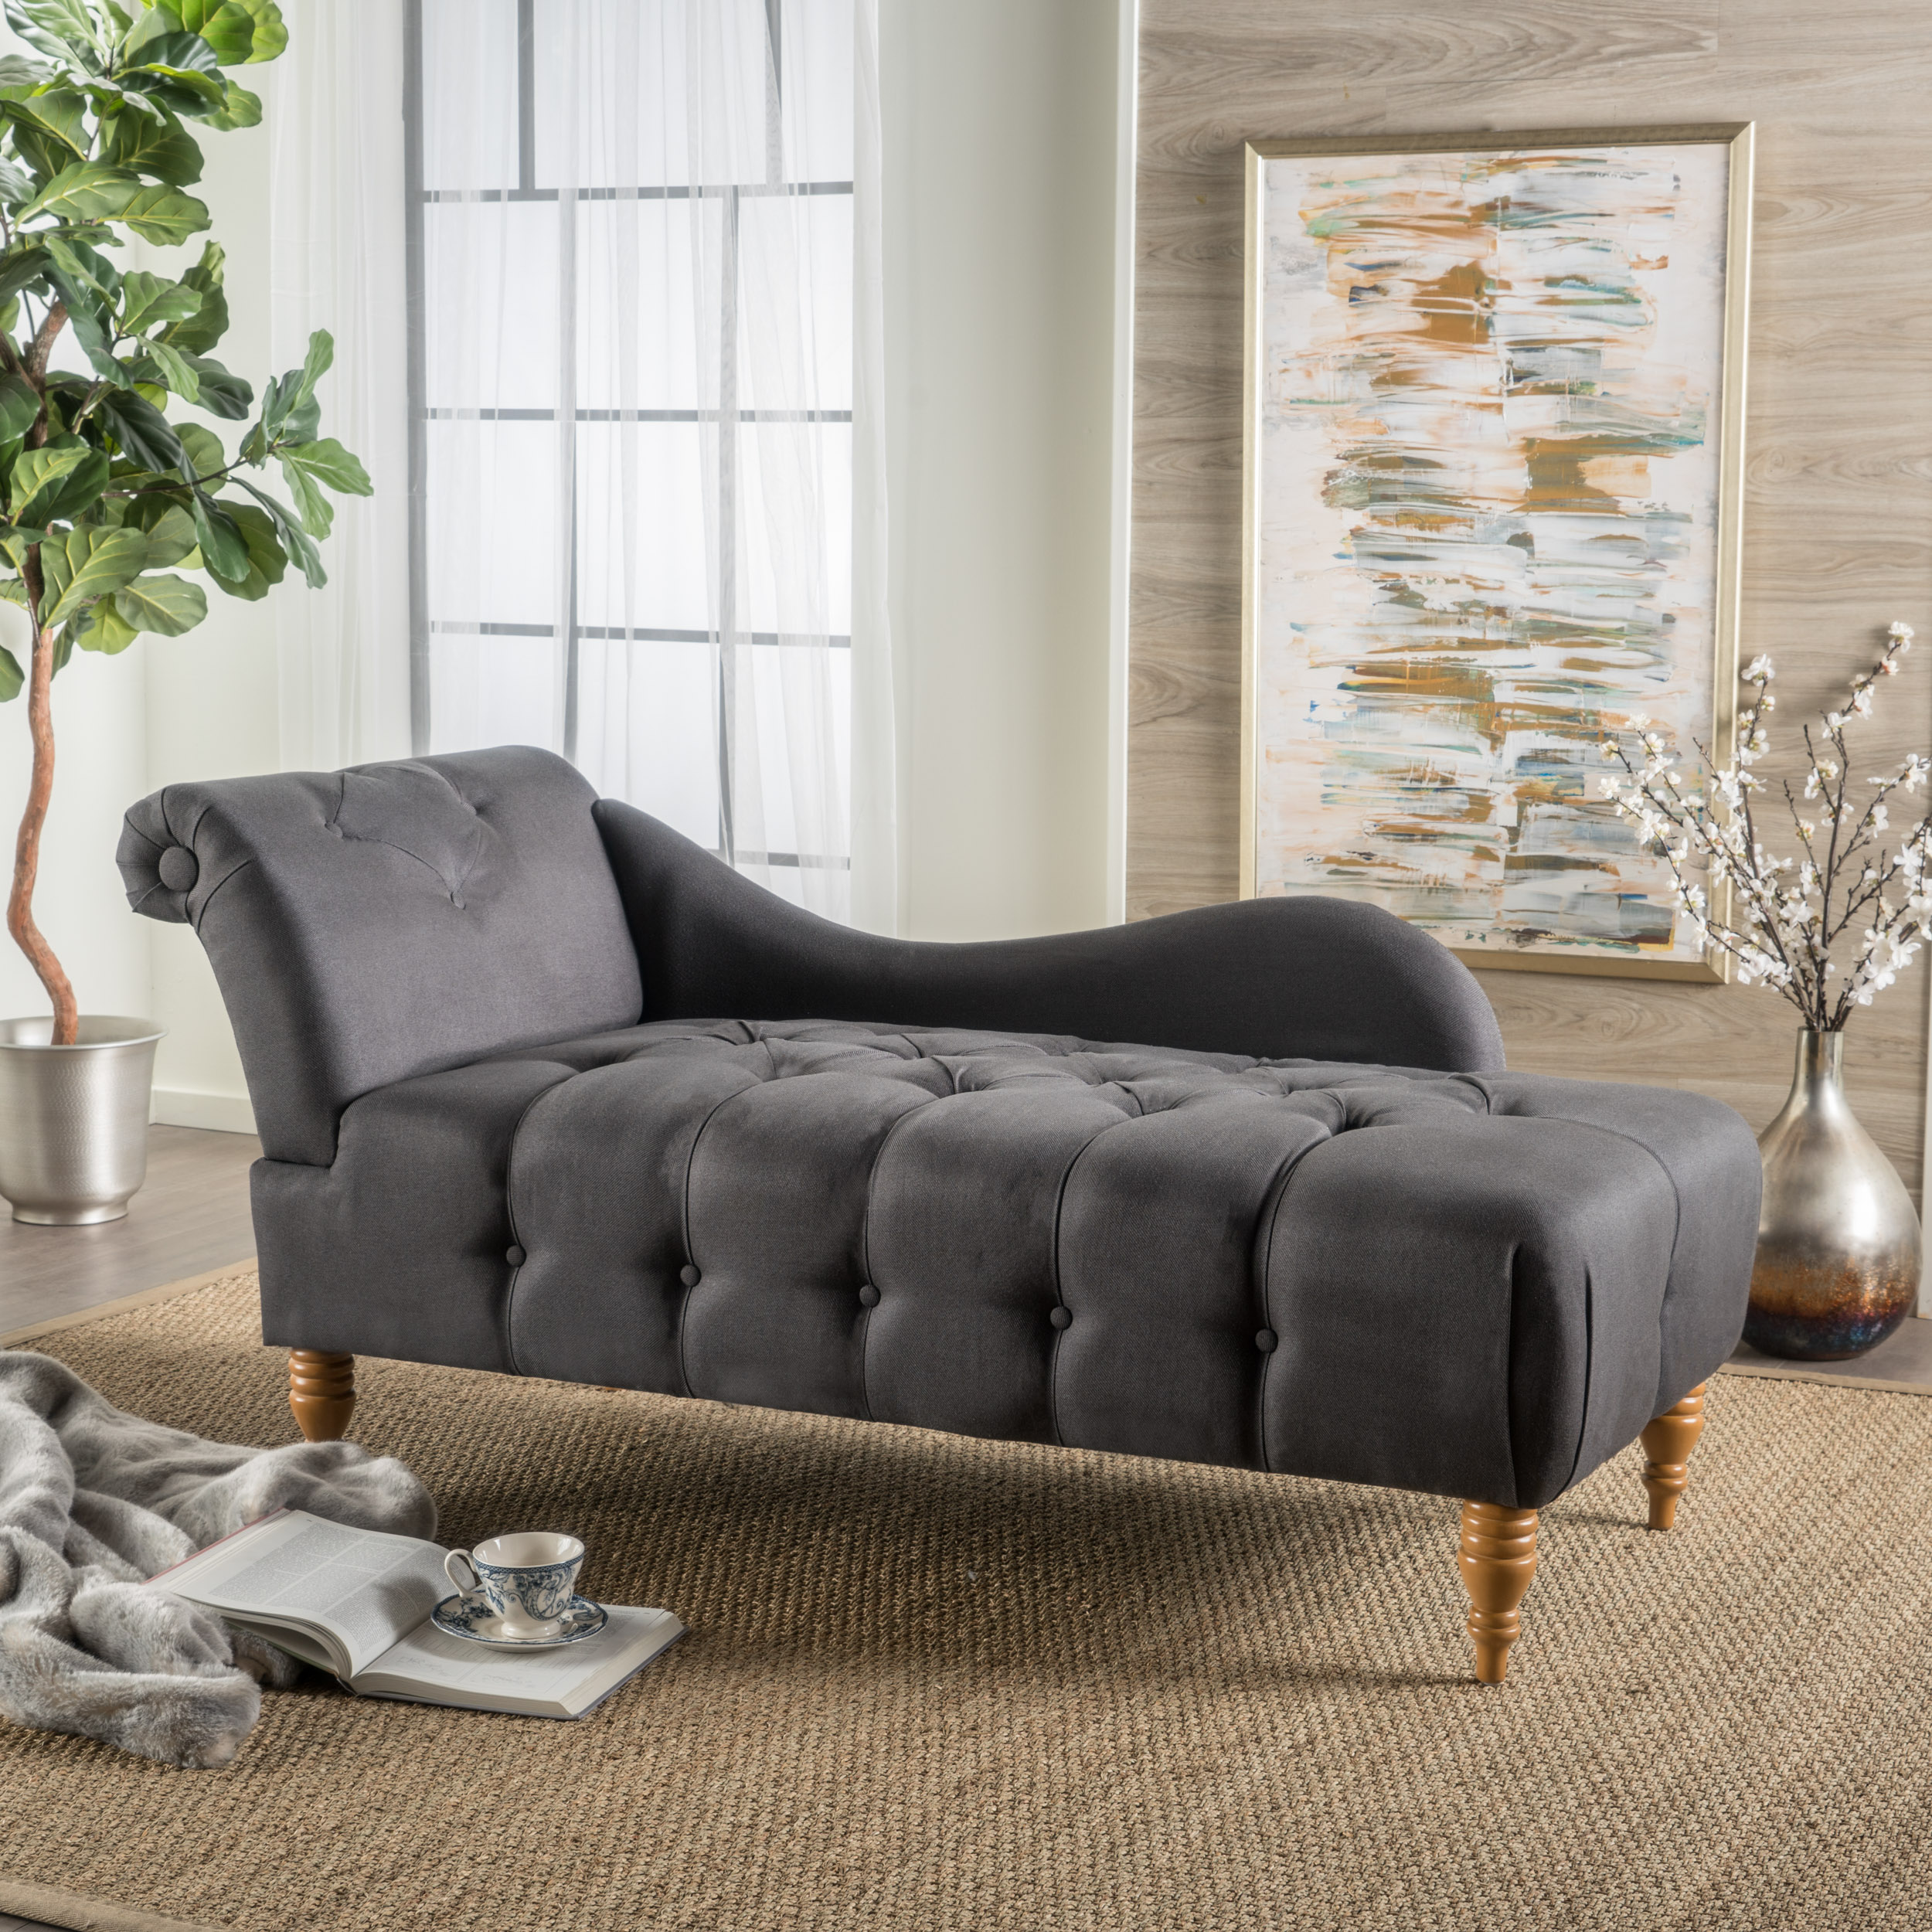 Ariel Fabric Tufted Chaise Lounge, Dark Charcoal